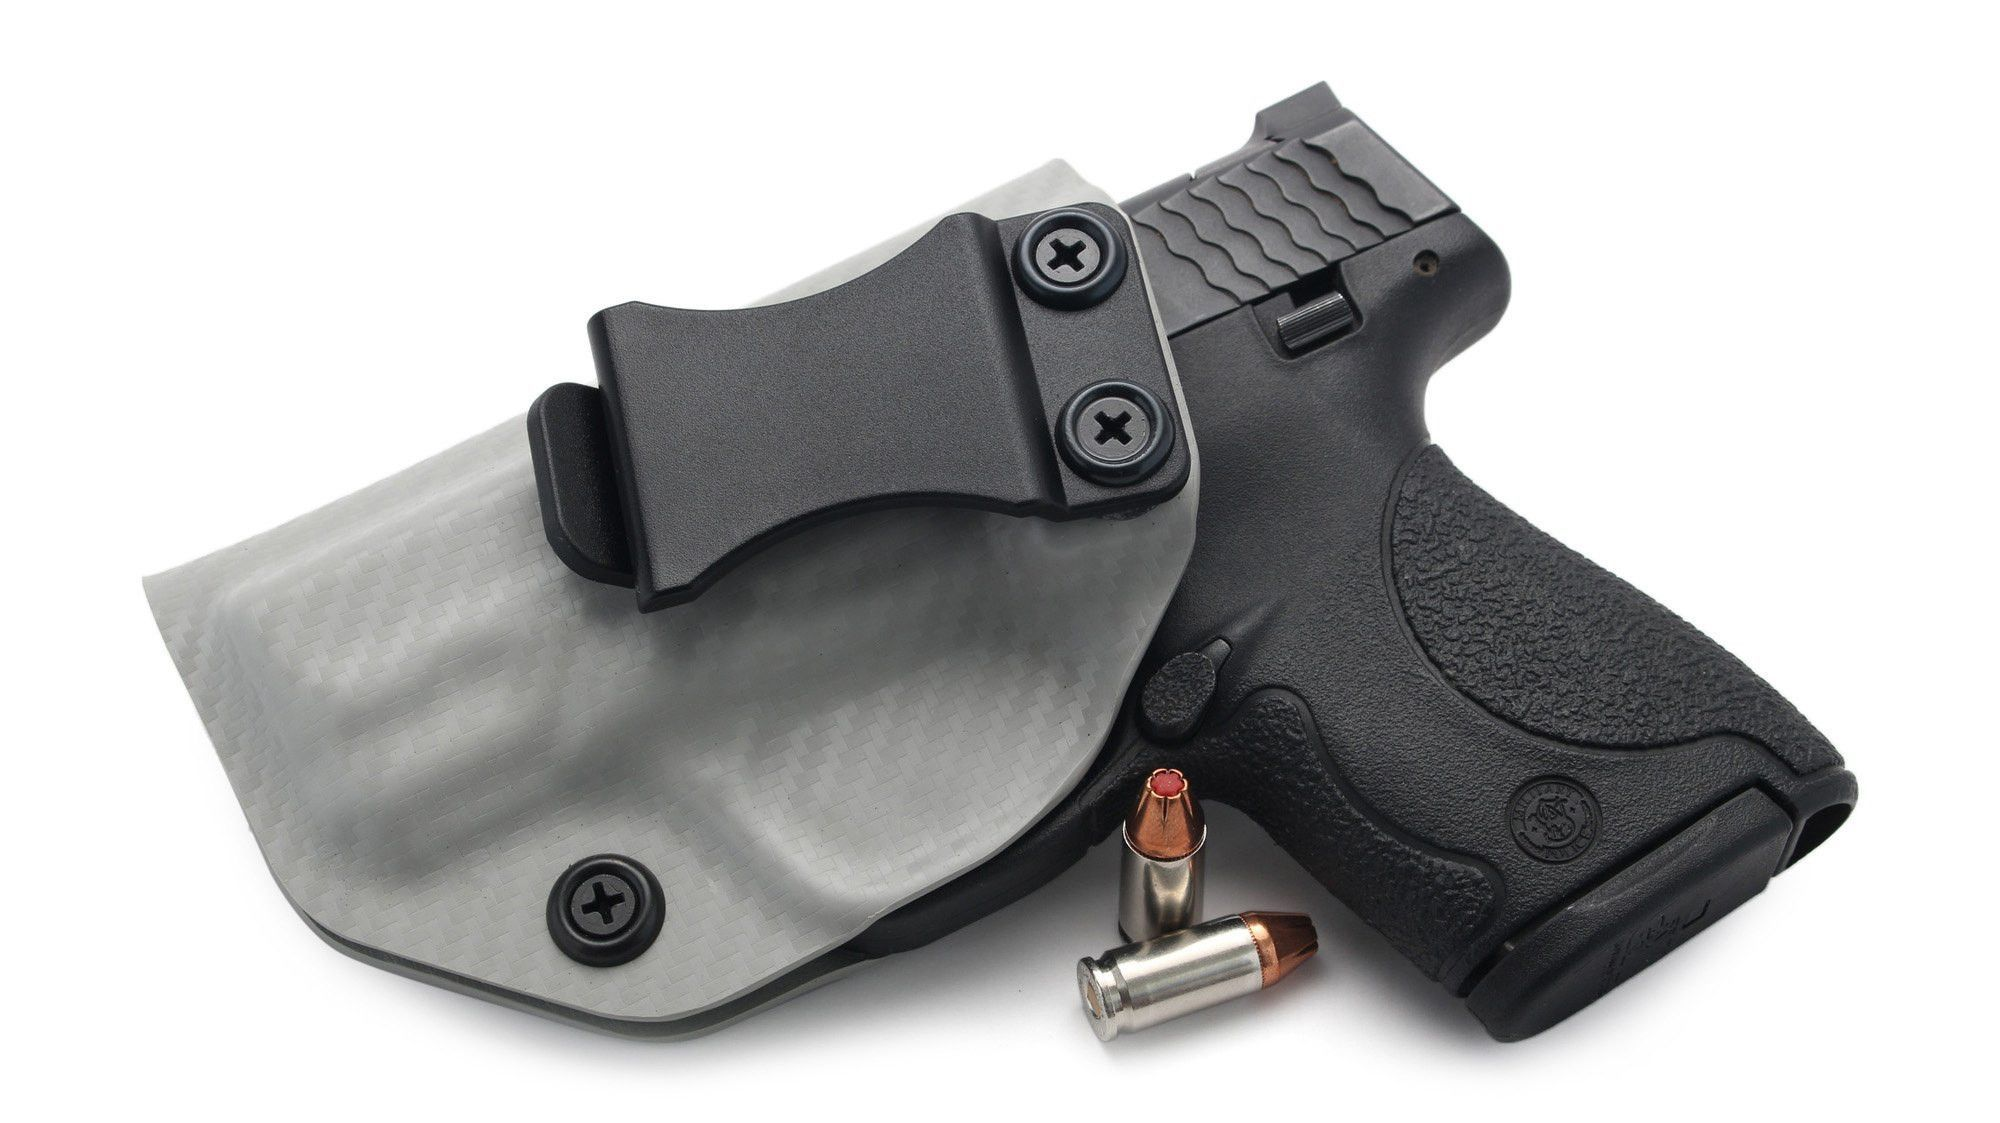 Kydex Concealment IWB Gun Holster BLACK CARBON FIBER For Ruger Handguns